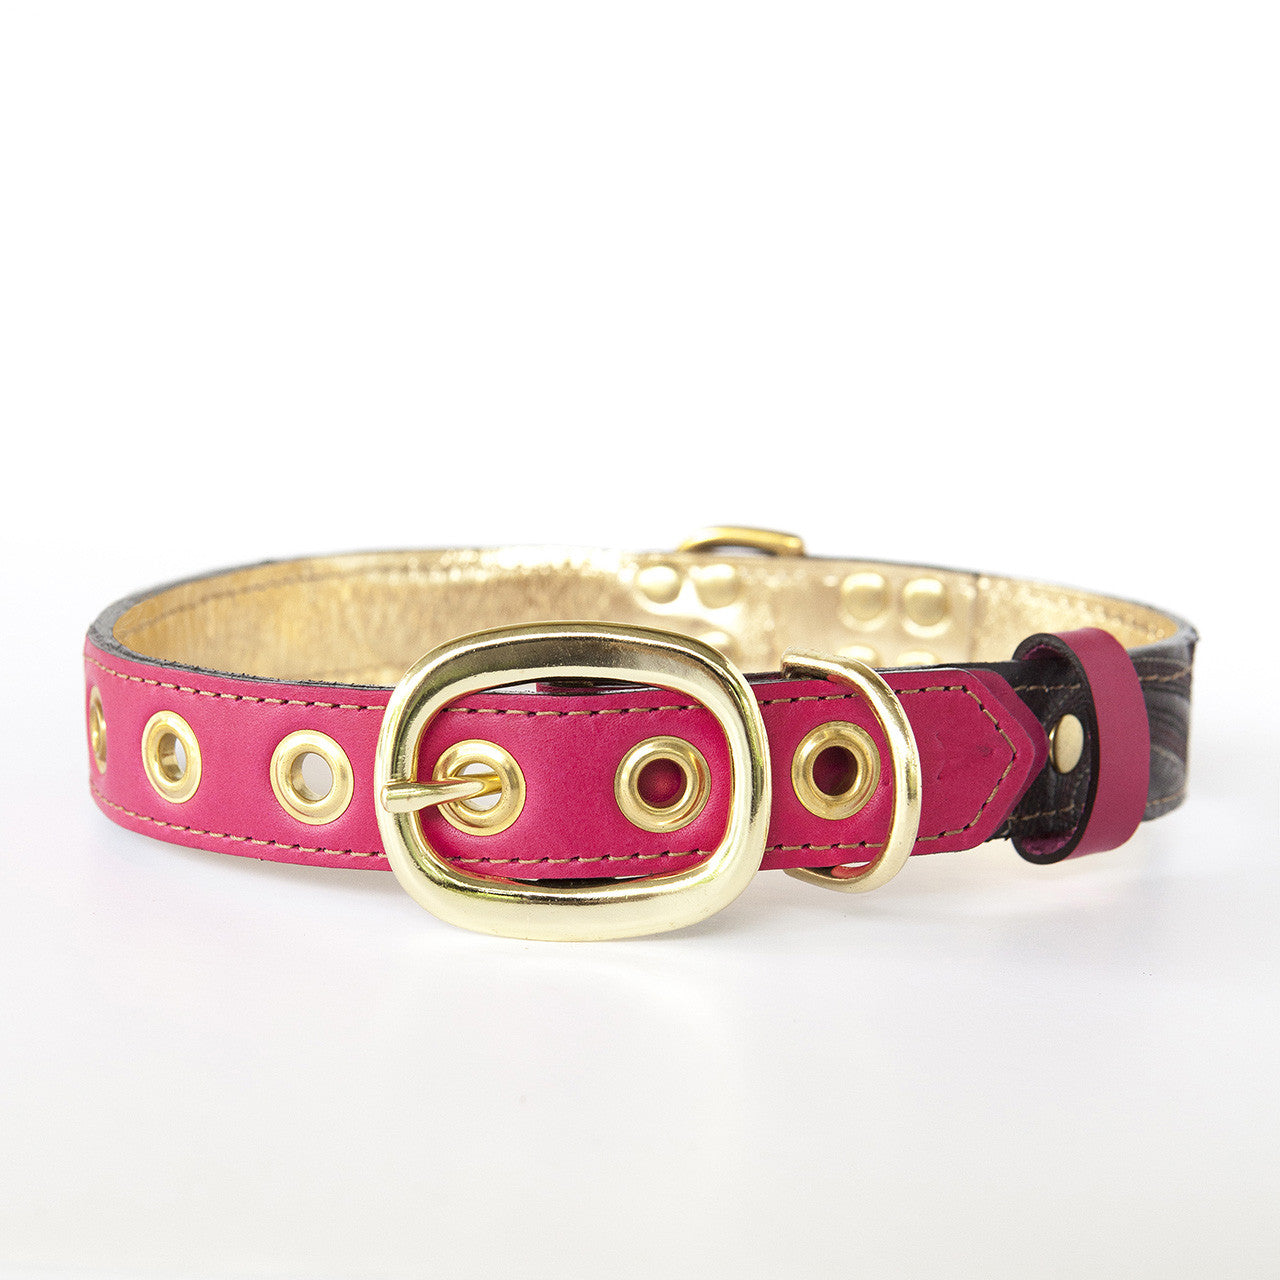 Hot Pink Dog Collar with Chocolate Leather + Chocolate and Tan Stitching (back view)